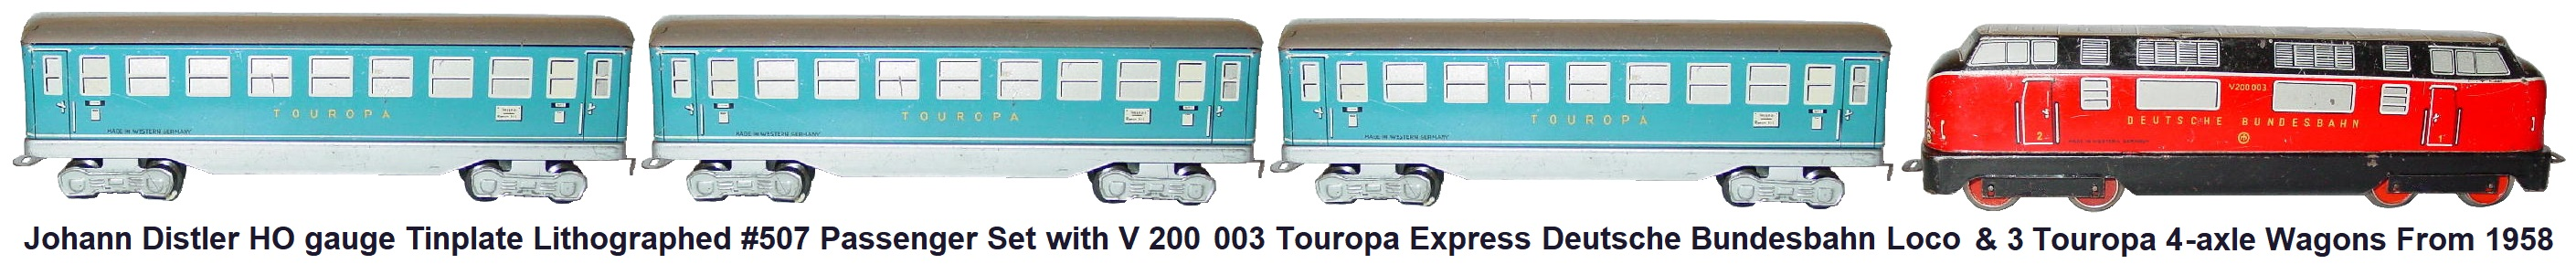 Johann Distler Nuremberg, HO gauge tinplate lithographed #507 Set with V 200 Touropa Express loco and 3 blue Touropa 4-axle wagons from 1958